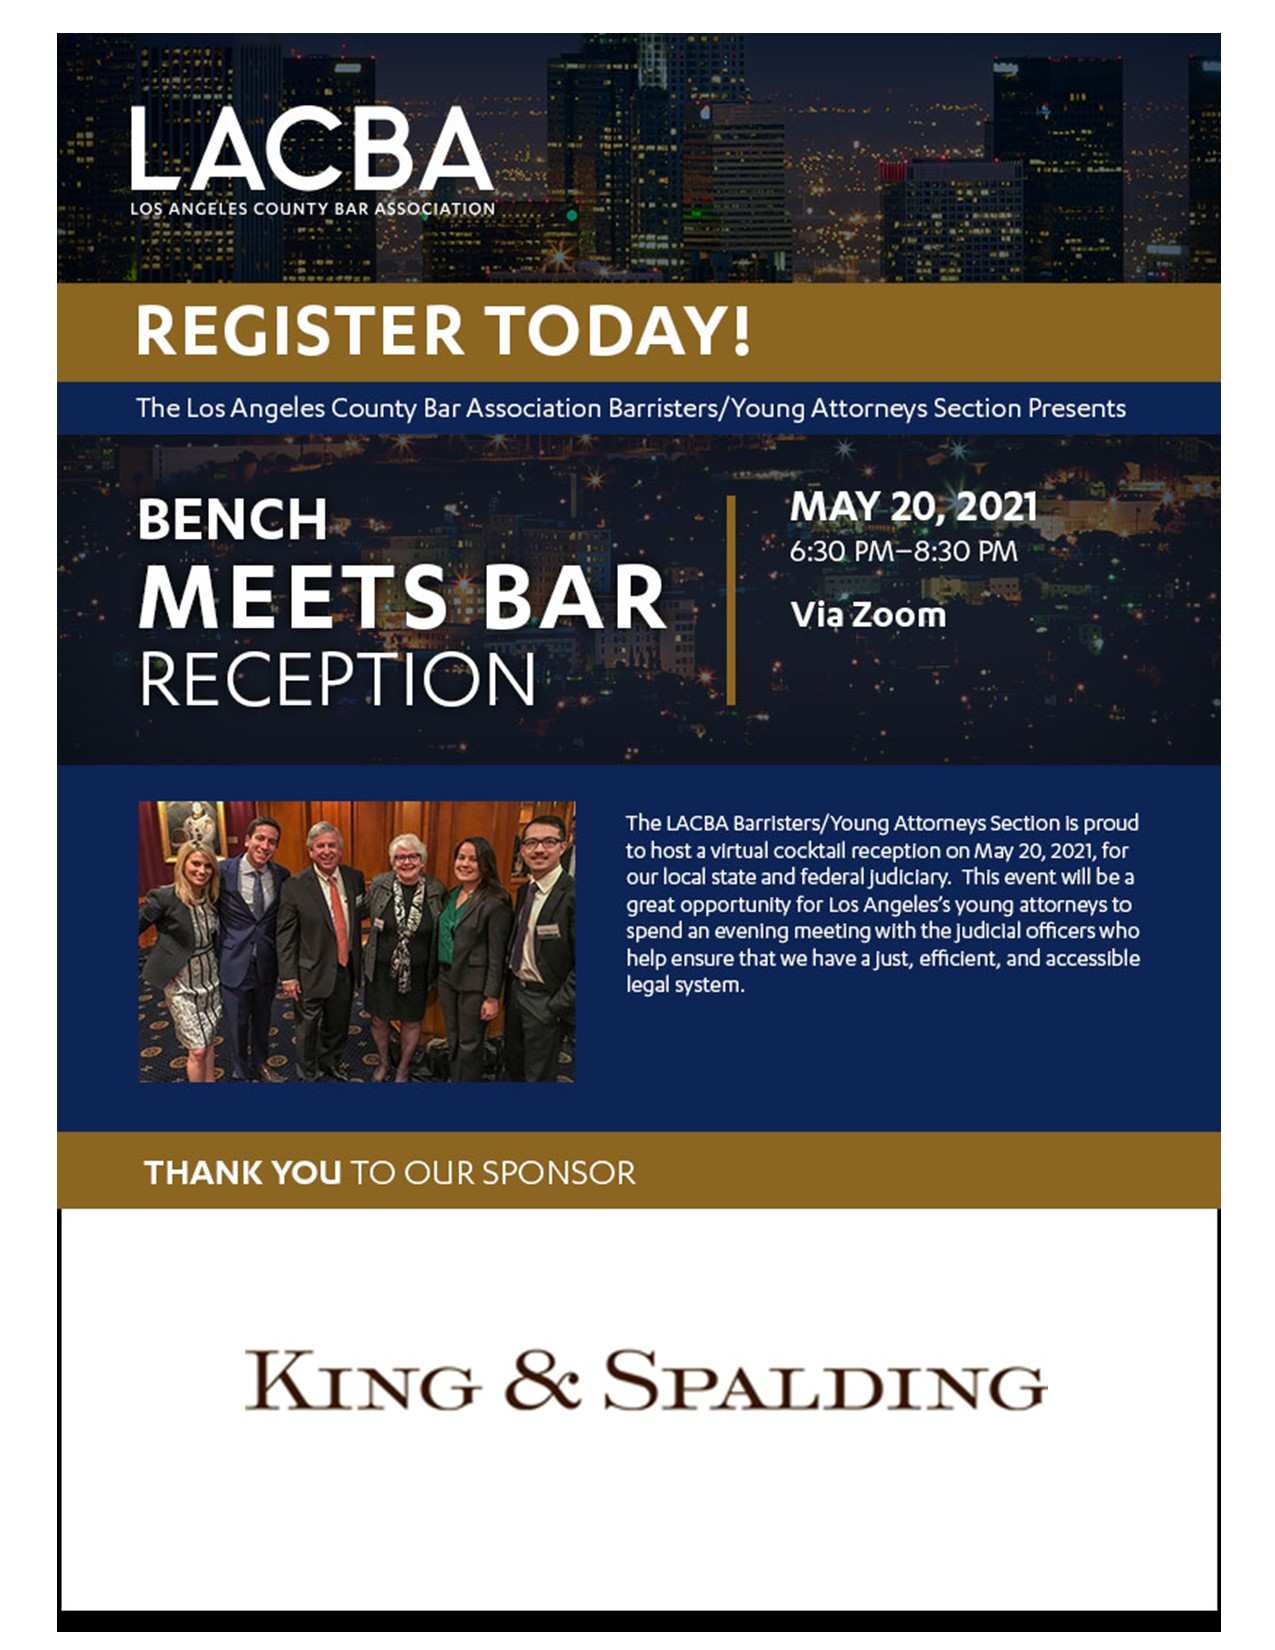 Barristers Bench and Bar Reception flyer 2021 V2